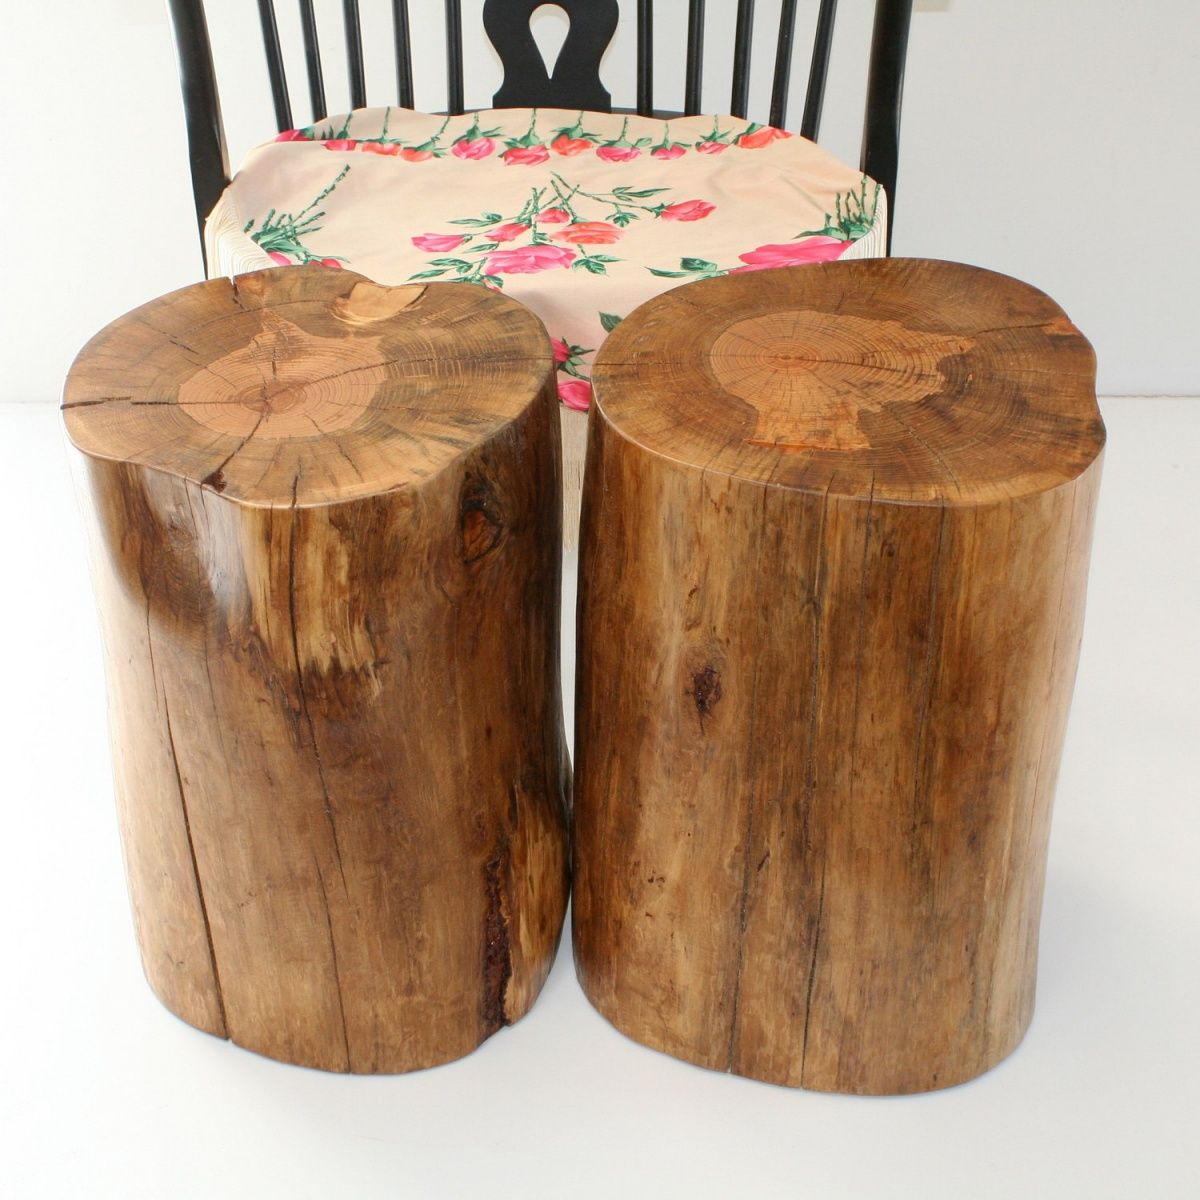 Delightful Painting Of Natural Tree Stump Side Table Brings Nature Fragment Into Your  Interior   Furniture   Pinterest   Tree Trunk Coffee Table, Tree Stump  Coffee ...